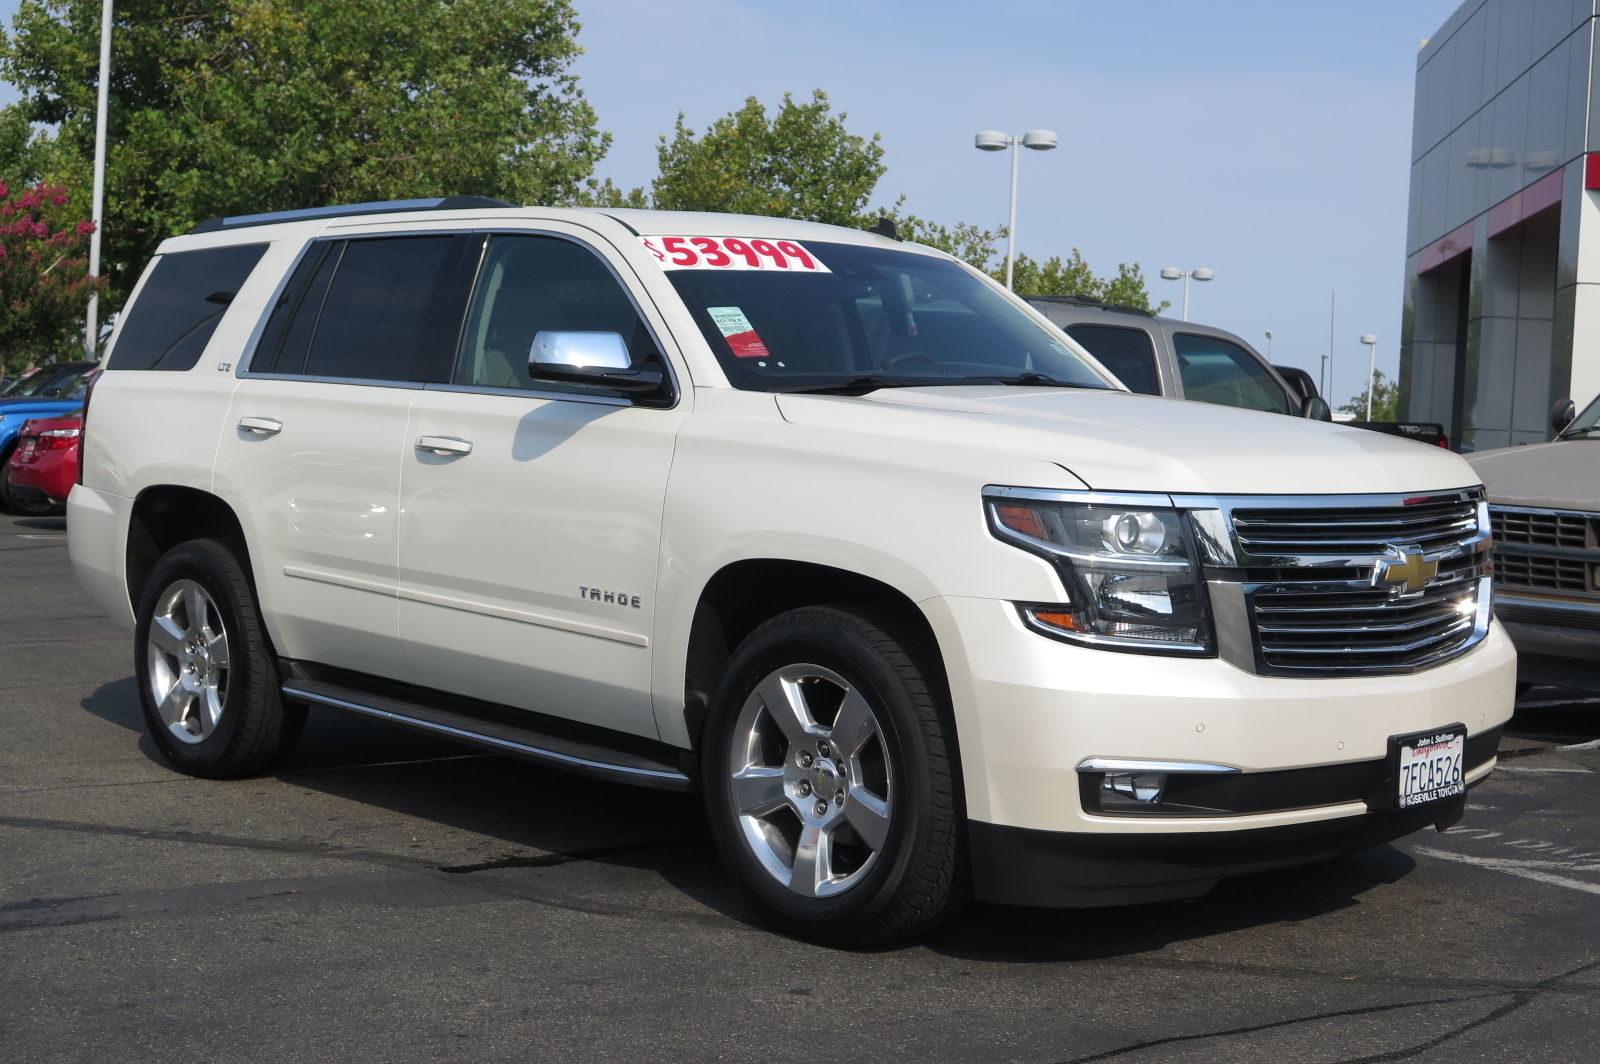 Tahoe 2015 chevrolet tahoe lt : Pre-Owned 2015 Chevrolet Tahoe LTZ 4D Sport Utility in Yuba City ...